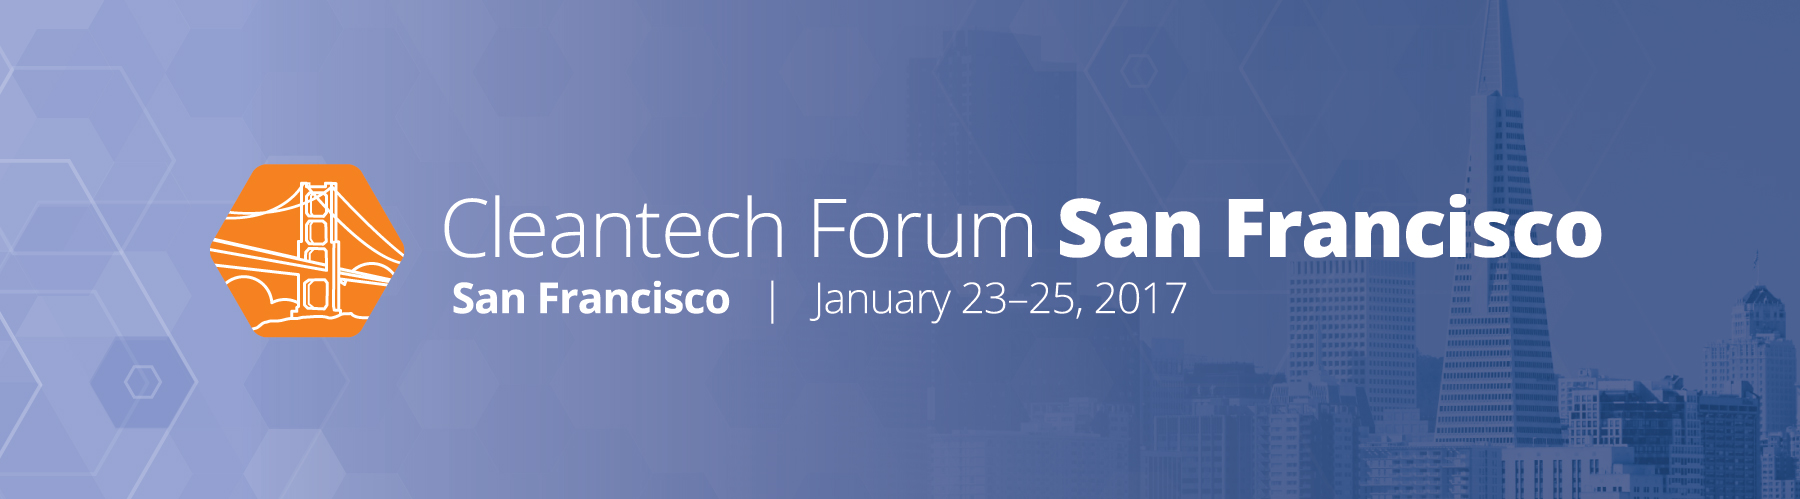 cleantech-forum-san-fransisco